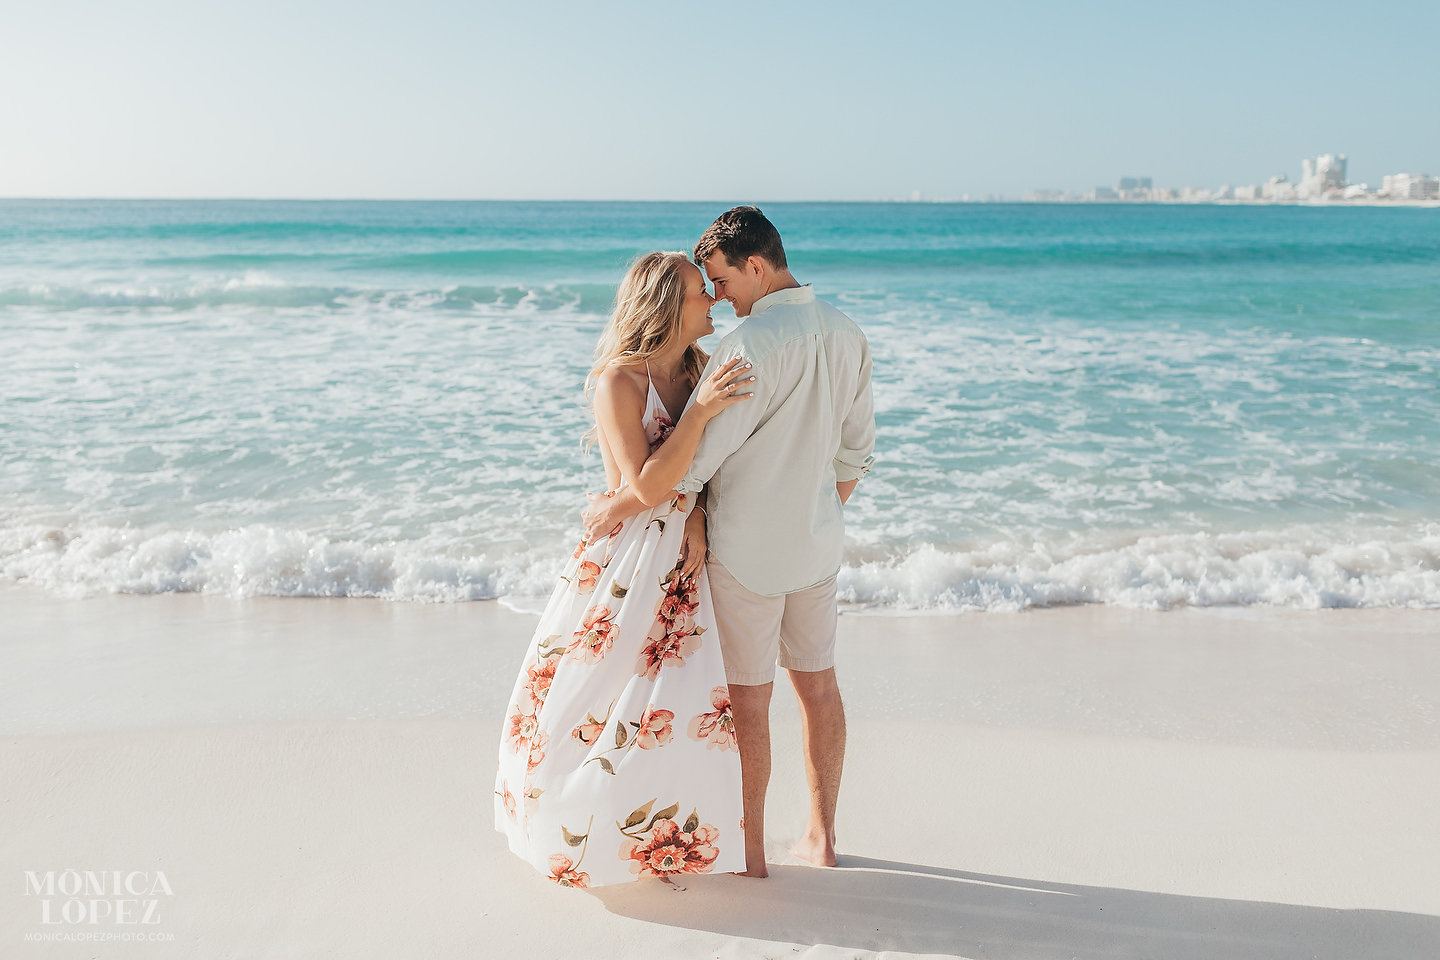 Cancun Romantic Portraits, Quintana Roo, Mexico by Monica Lopez Photography